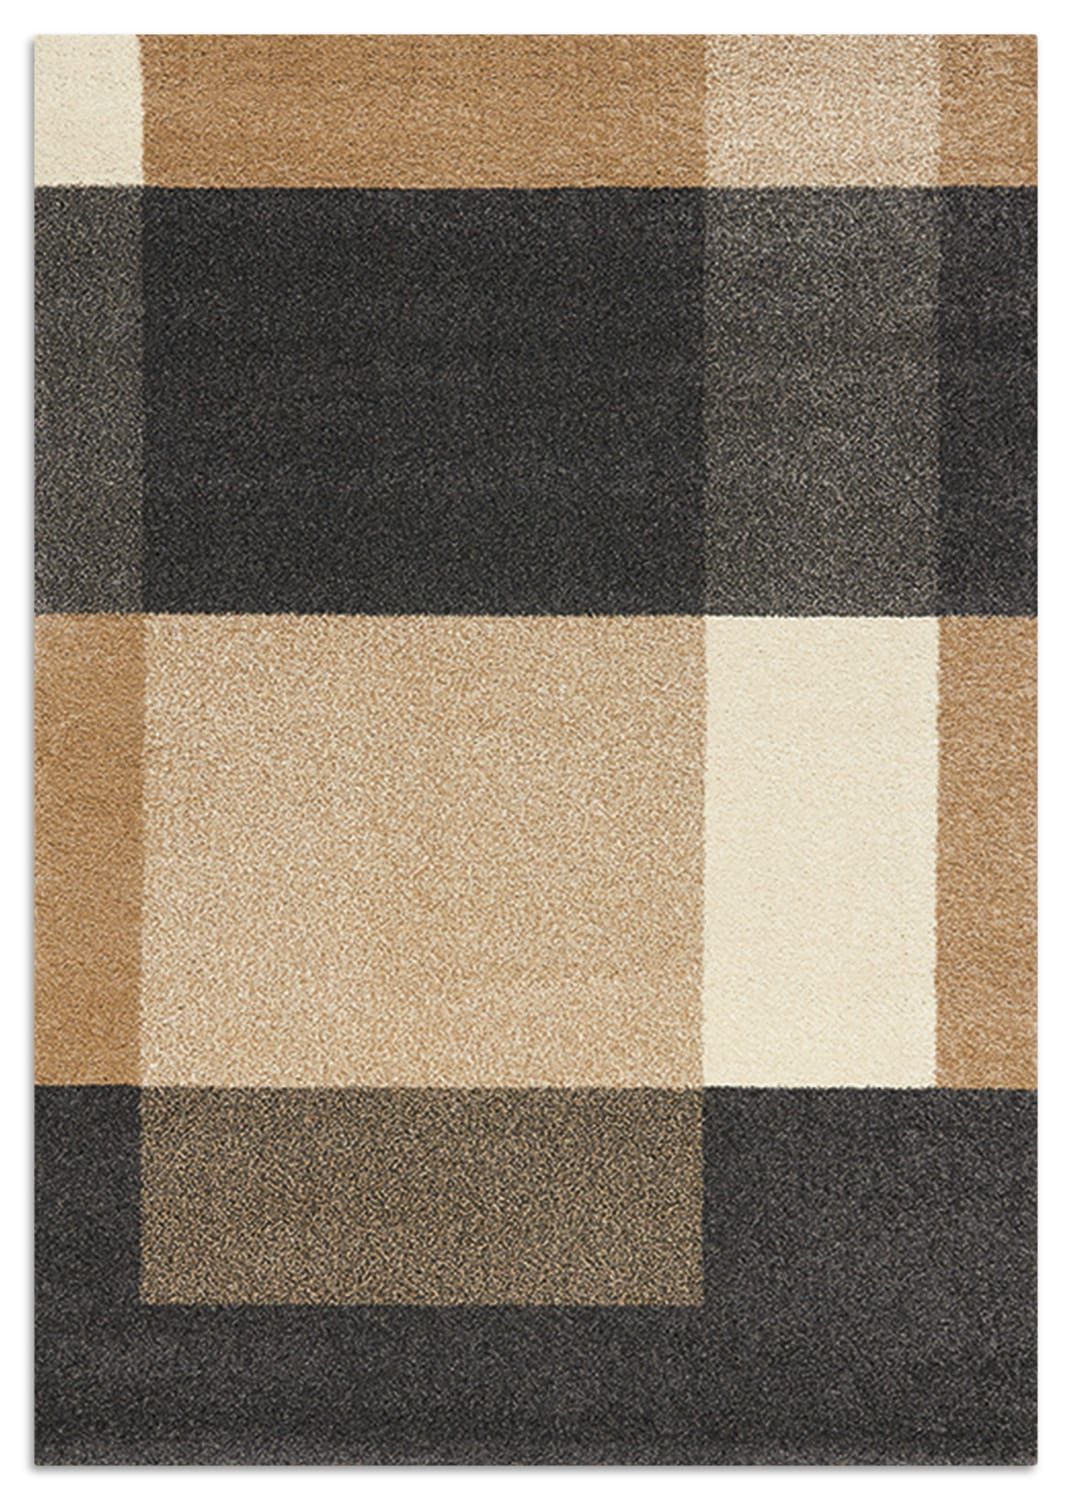 Rugs - Ashbury Rectangles Area Rug – 8' x 10'